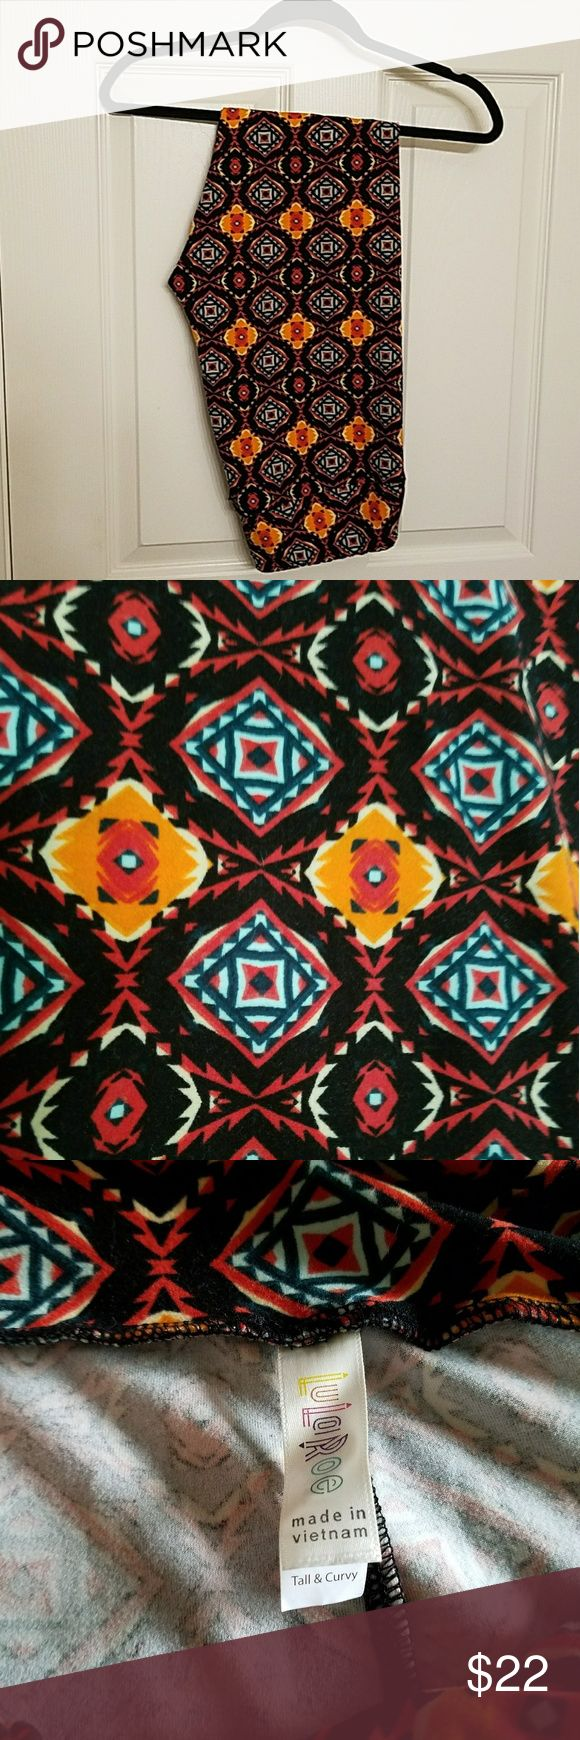 TC LuLaRoe Leggings Tall and Curvy sized LuLa leggings with a multicolored Aztec print over a black background. Never worn, brand new condition LuLaRoe Pants Leggings